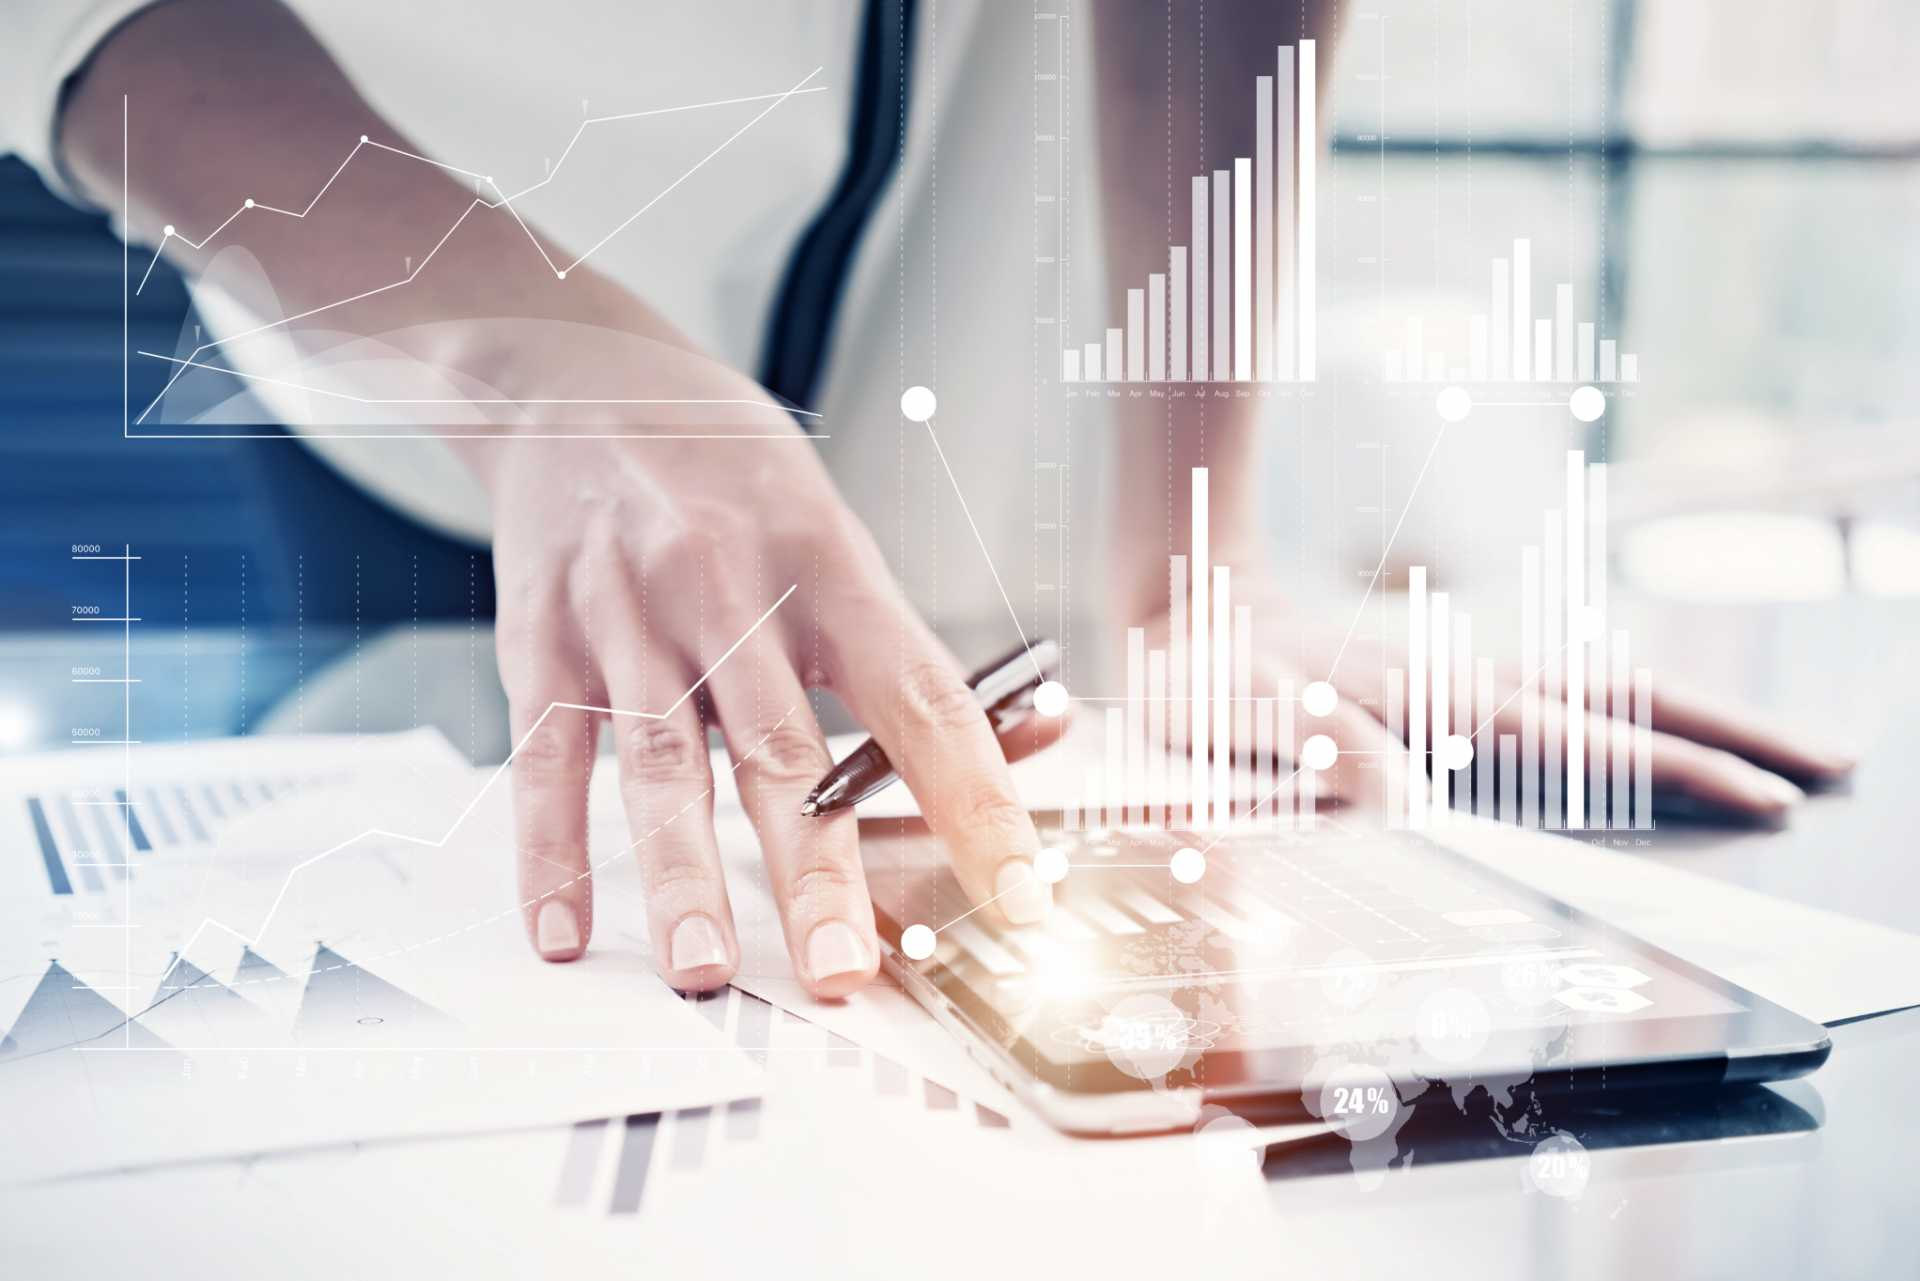 business resiliency Picture female hand touching modern tablet.Investment manager working new private banking project office.Using electronic device.Graphic icons,worldwide stock exchanges interface on screen. Horizontal - image courtesy of Shutterstock